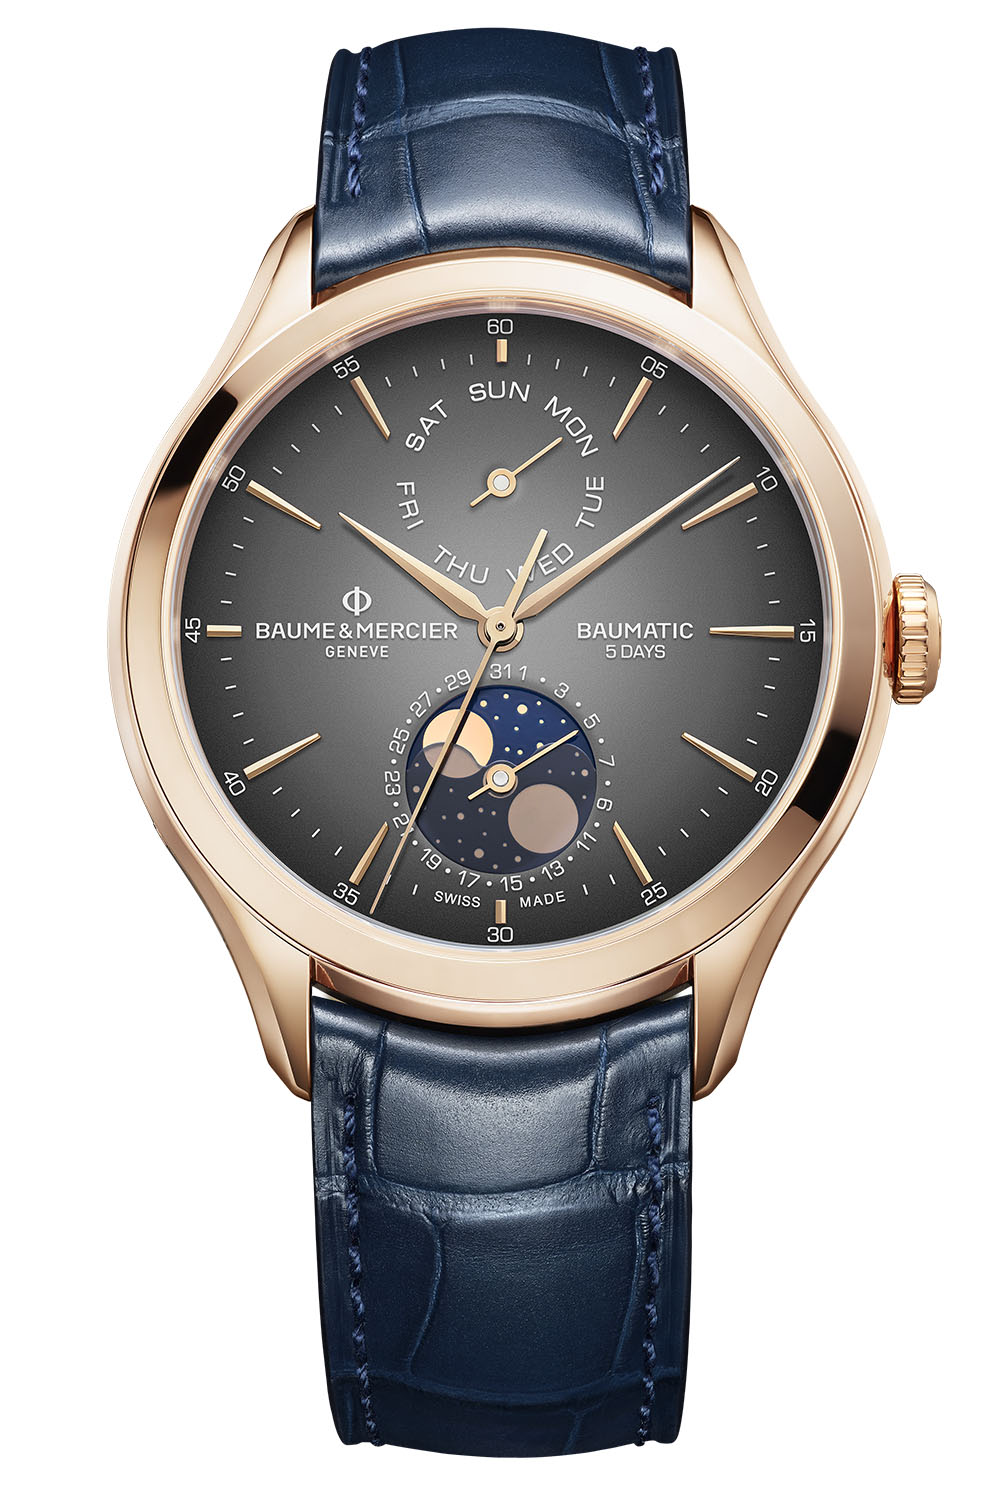 2020 Baume Mercier Baumatic Day-date moonphase - 1